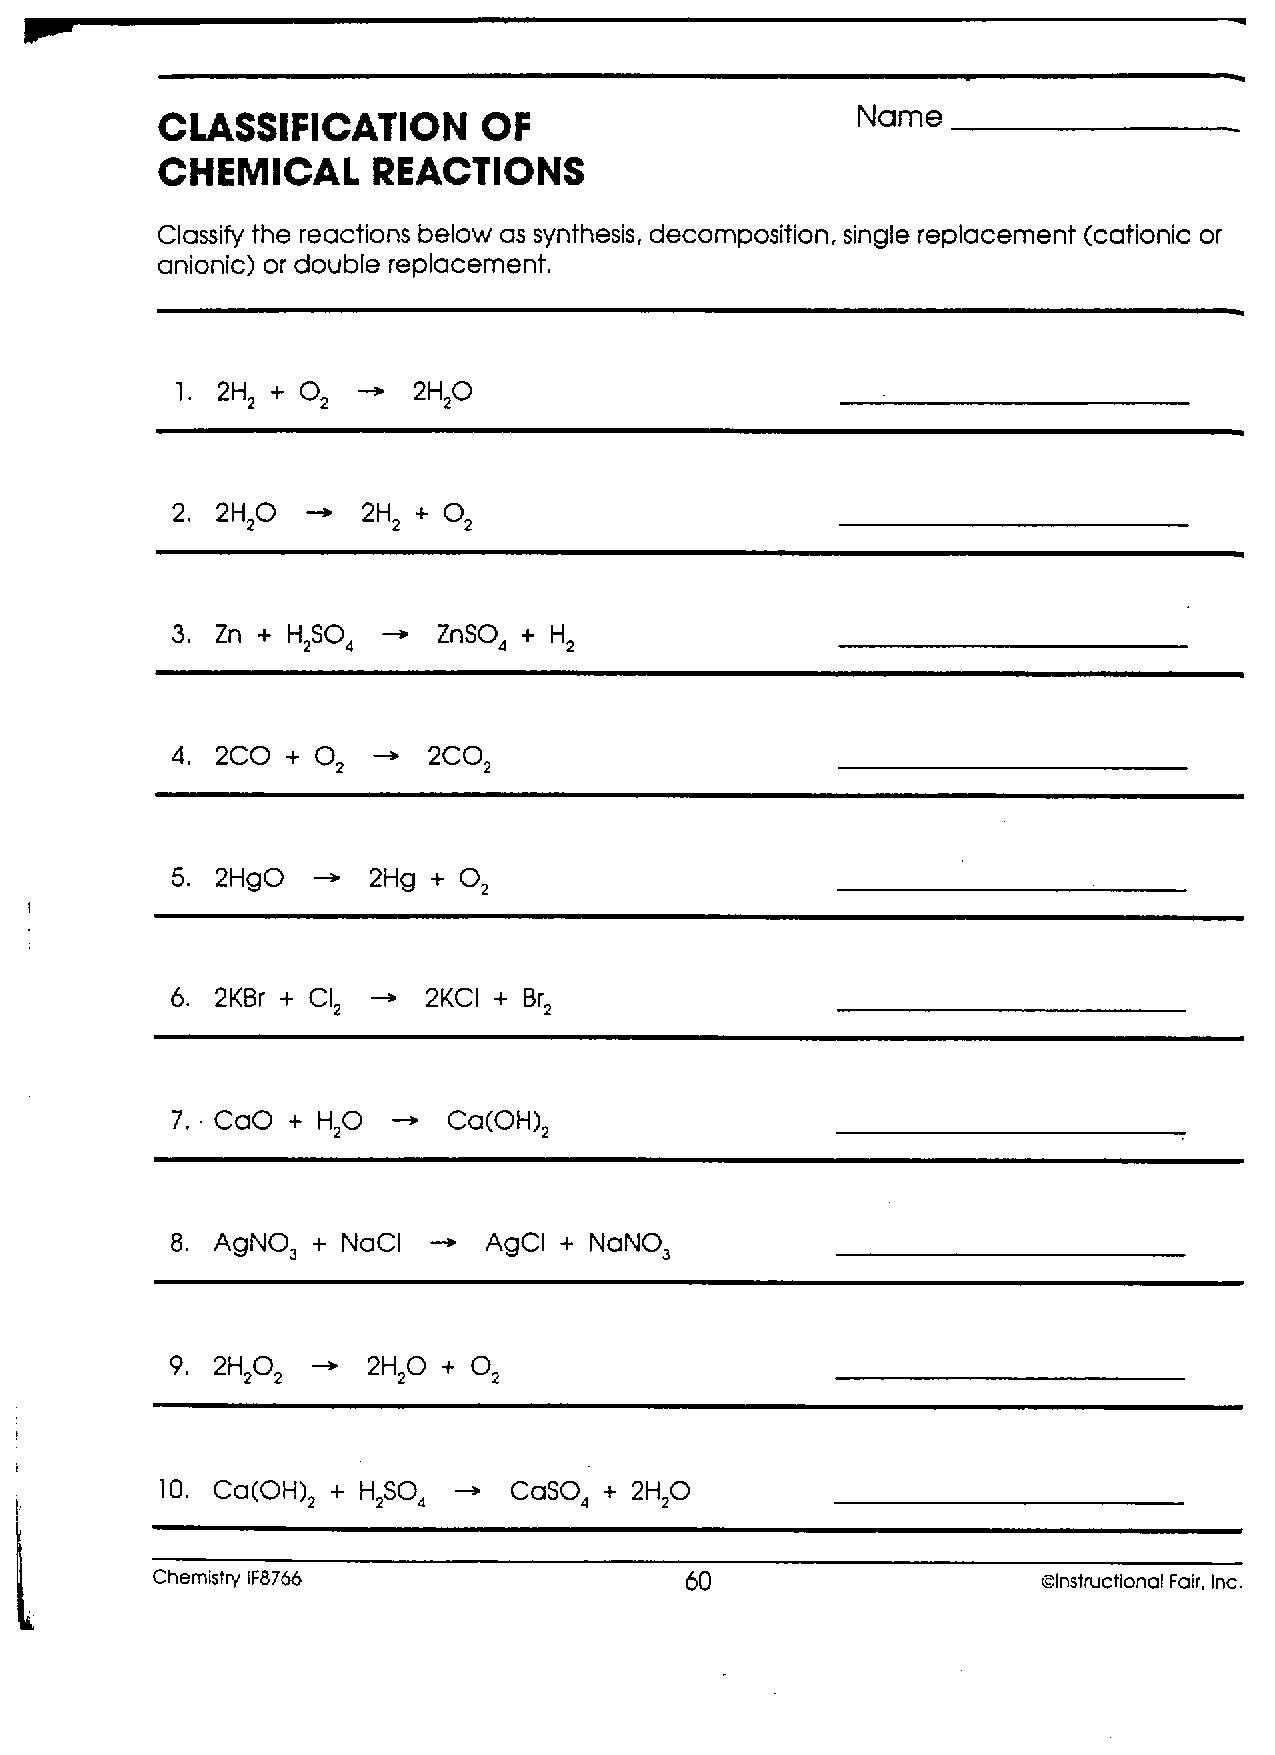 Chemical Reaction Worksheet Answers or Classification Chemical Reactions Worksheet Answers New Dc Heath